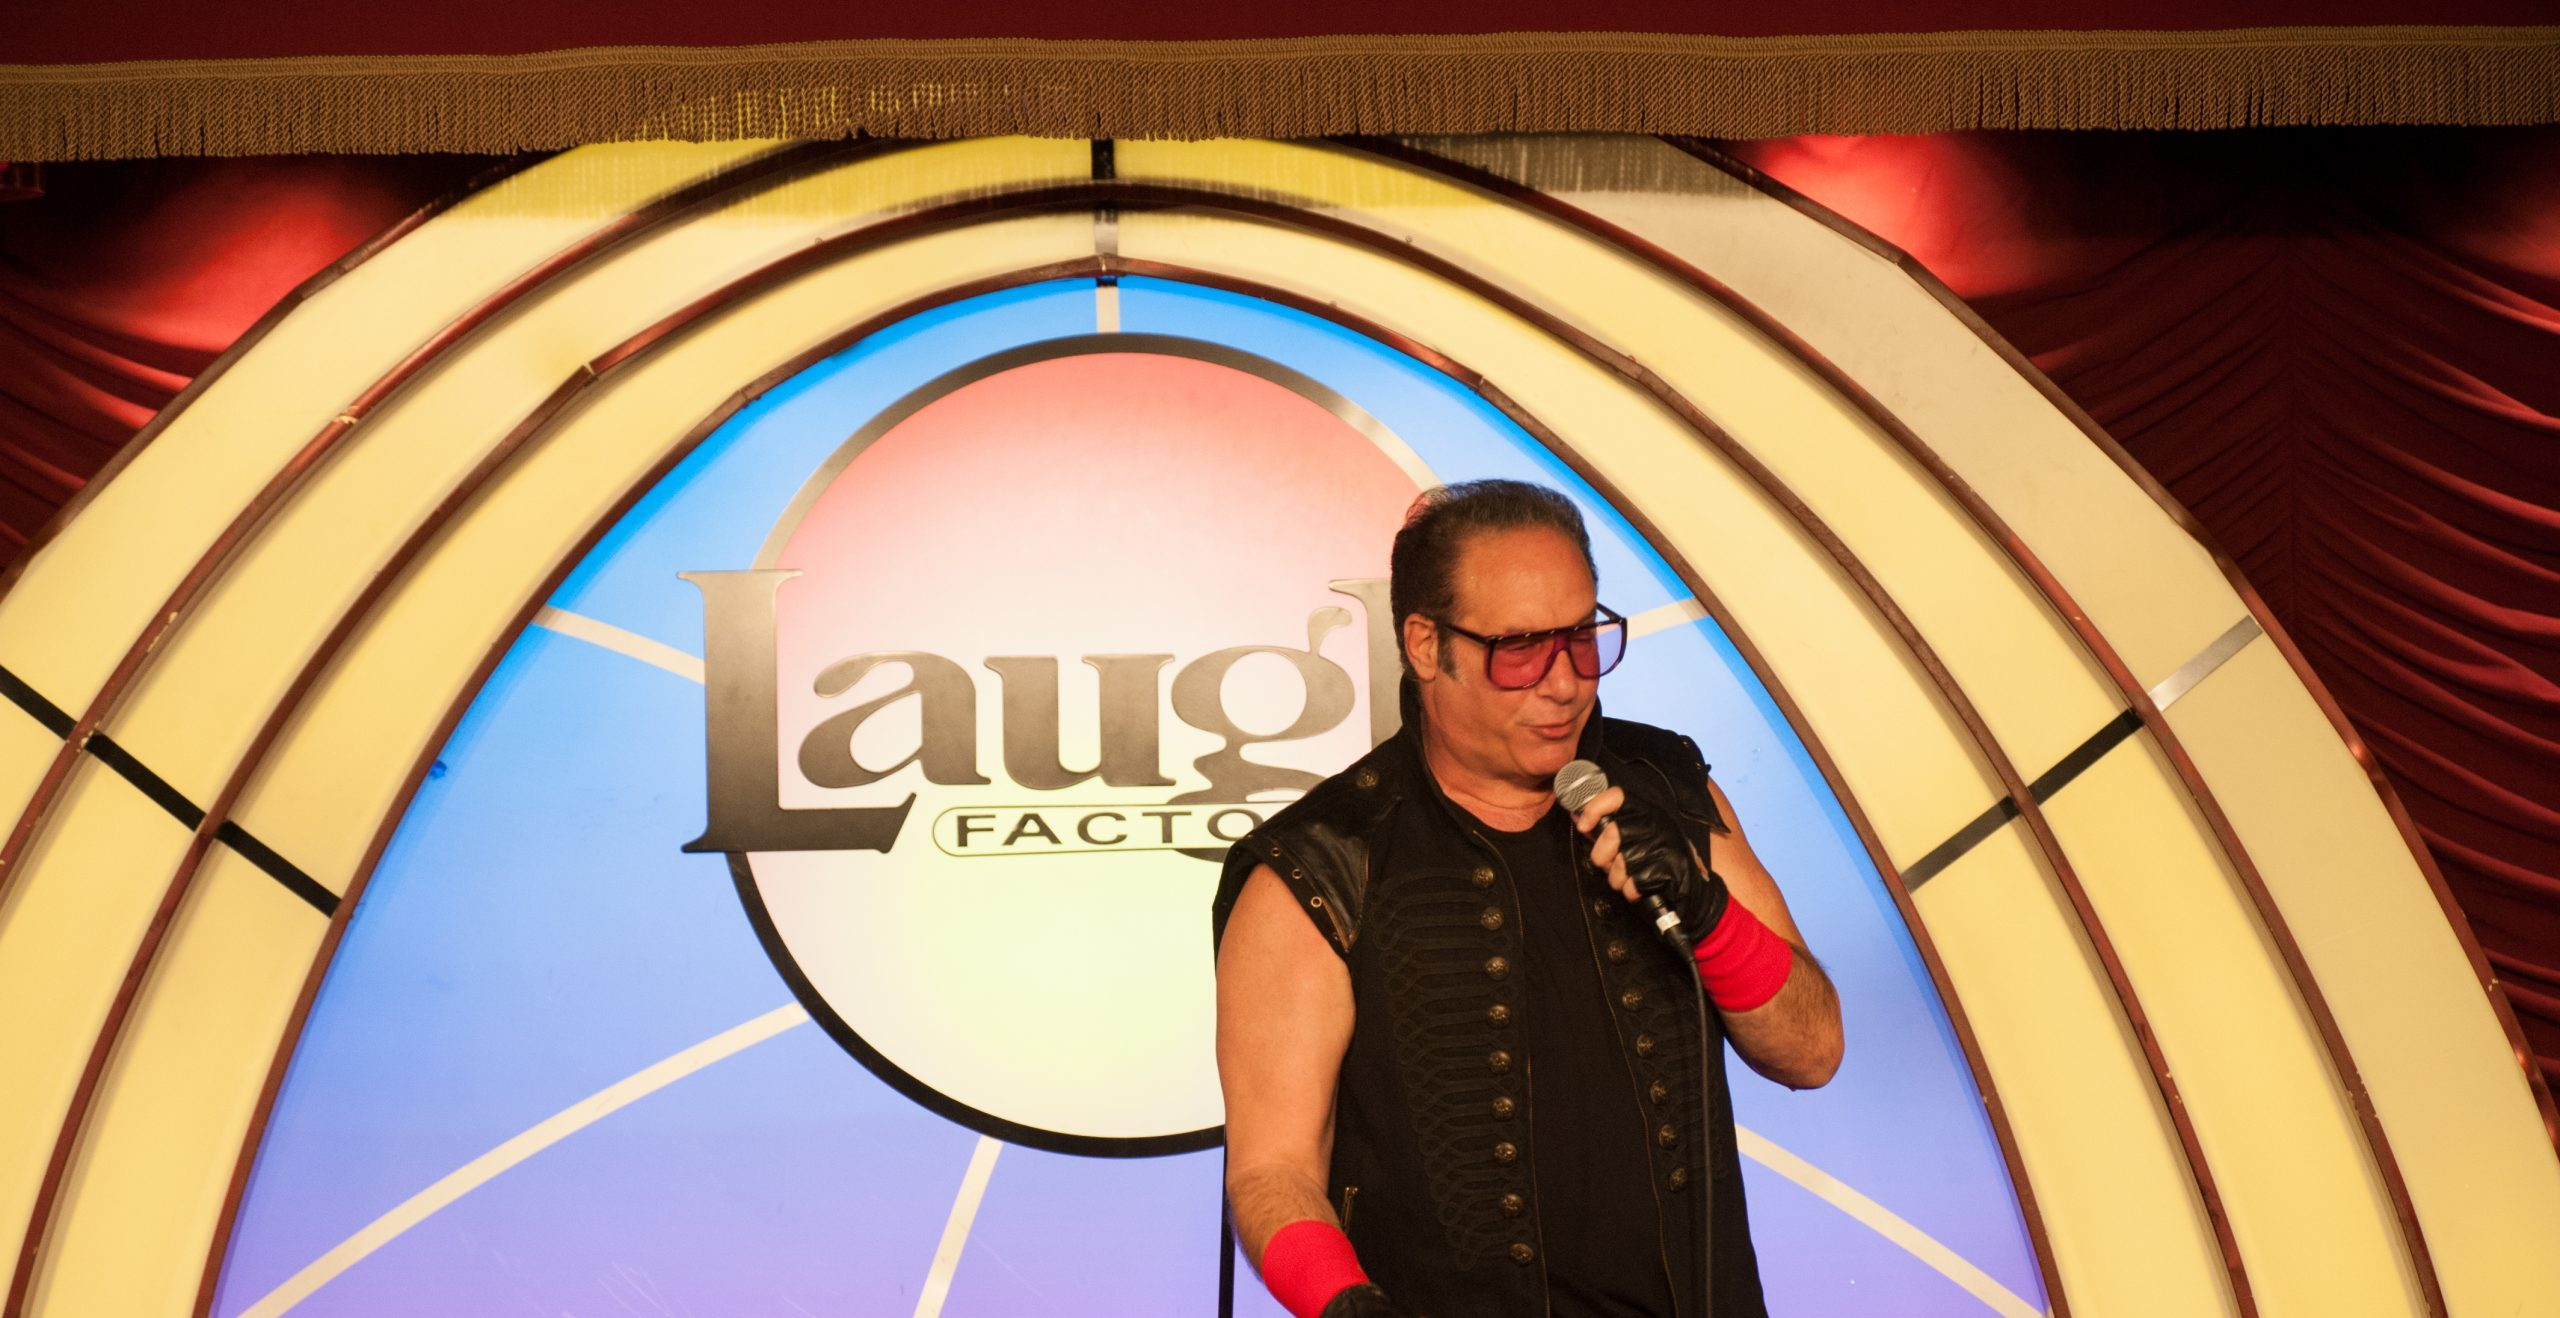 Andrew Dice Clay, Andrew Dice Clay Las Vegas, Andrew Dice Clay Laugh Factory